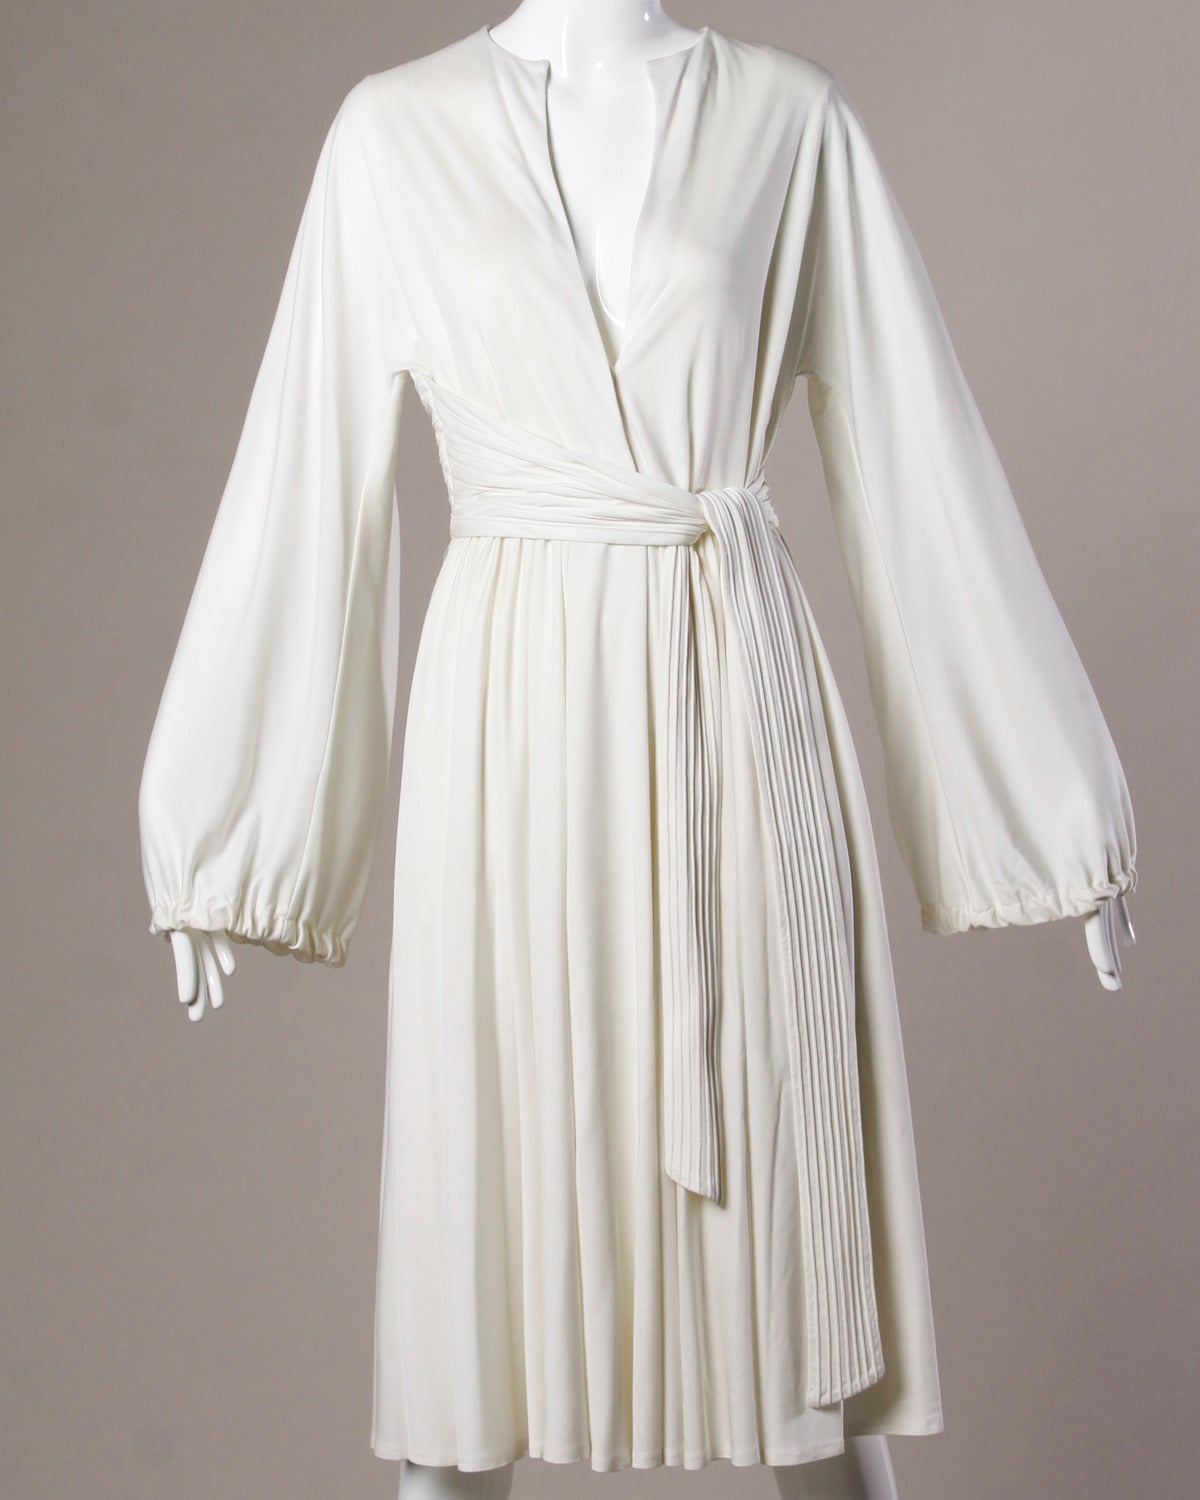 Gorgeous vintage white jersey midi dress by Donald Brooks. Plunging neckline can be snapped up for a more modest look. Full blouson sleeves and attached waist sash.